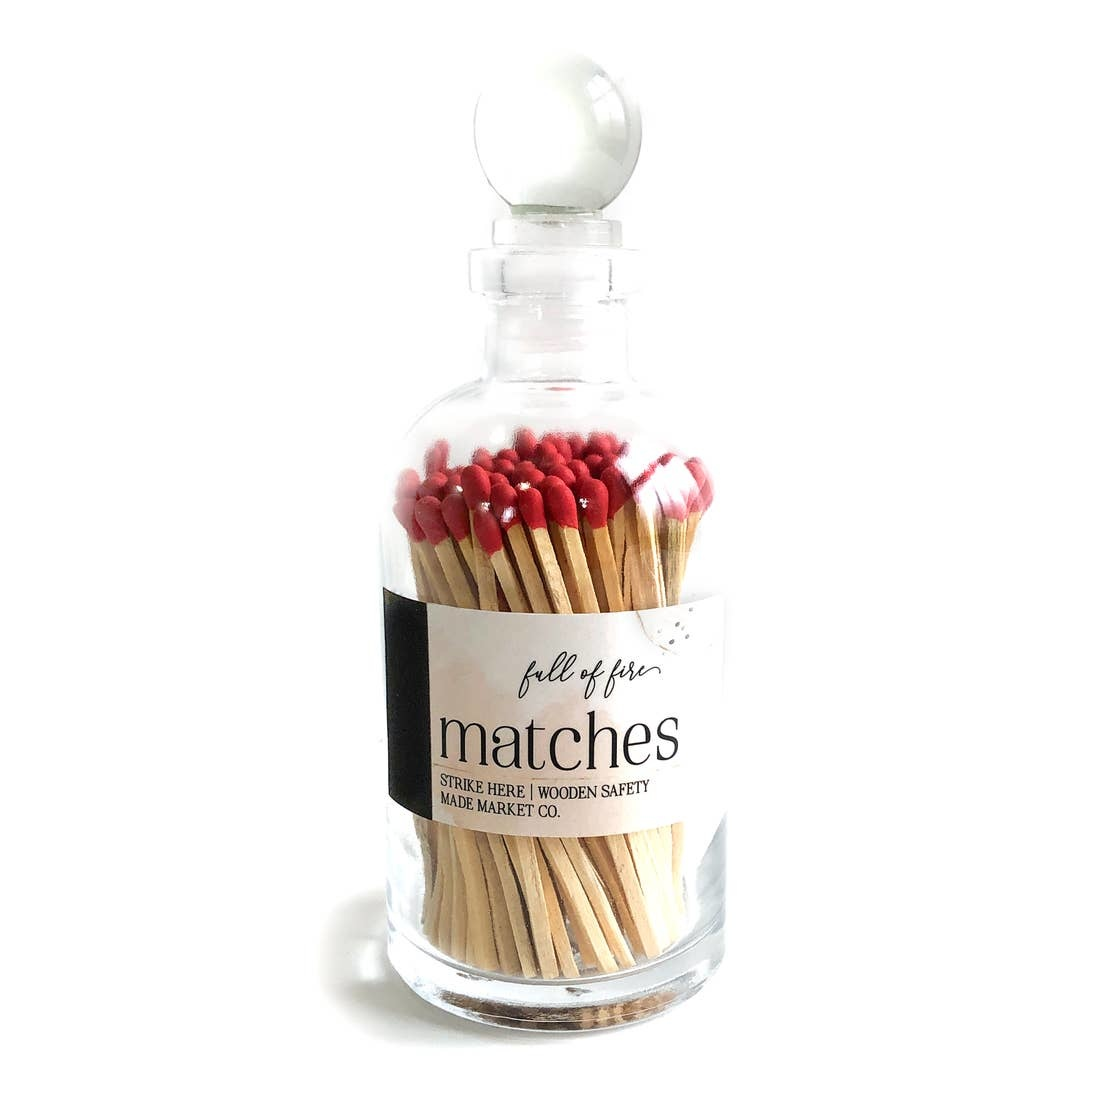 MADE MARKET CO Glass Match Jar